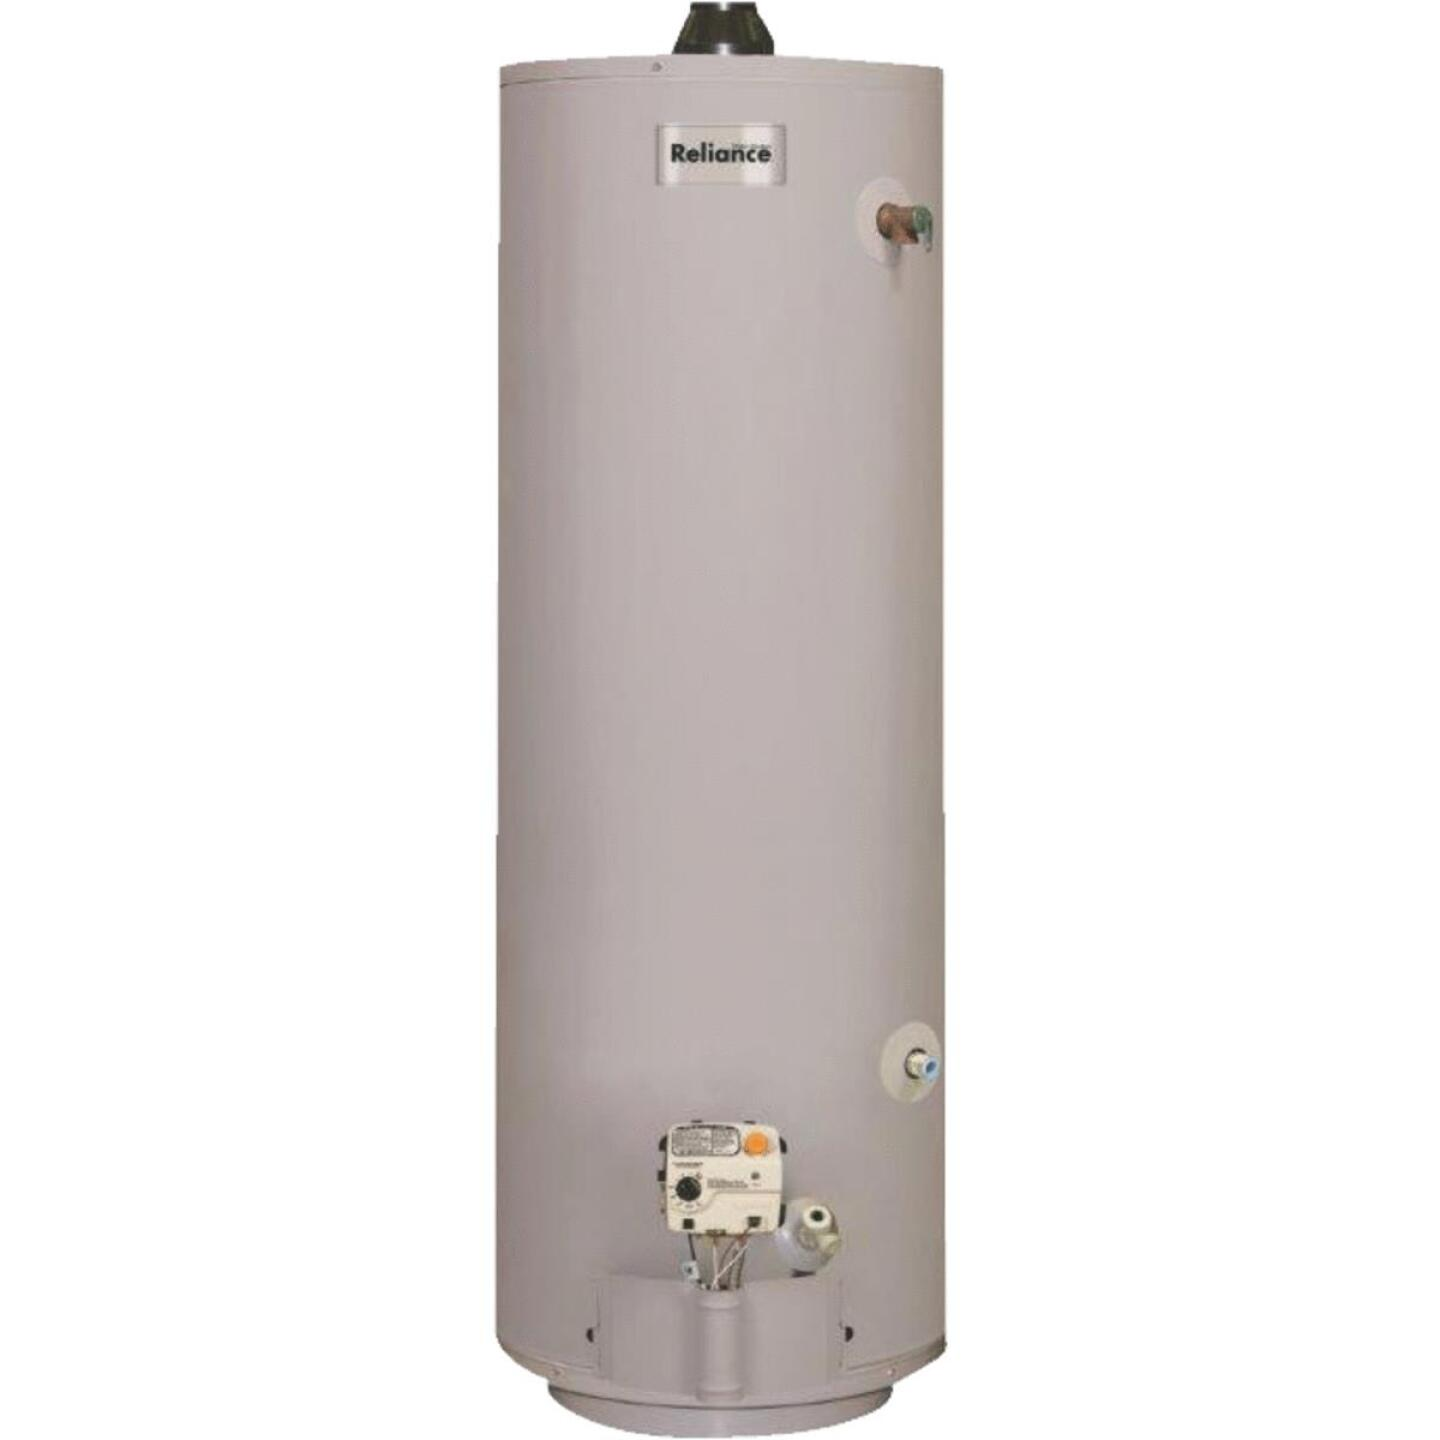 Reliance 40 Gal. 6yr Natural Gas/Liquid Propane Direct Vent Water Heater for Mobile Home Image 1